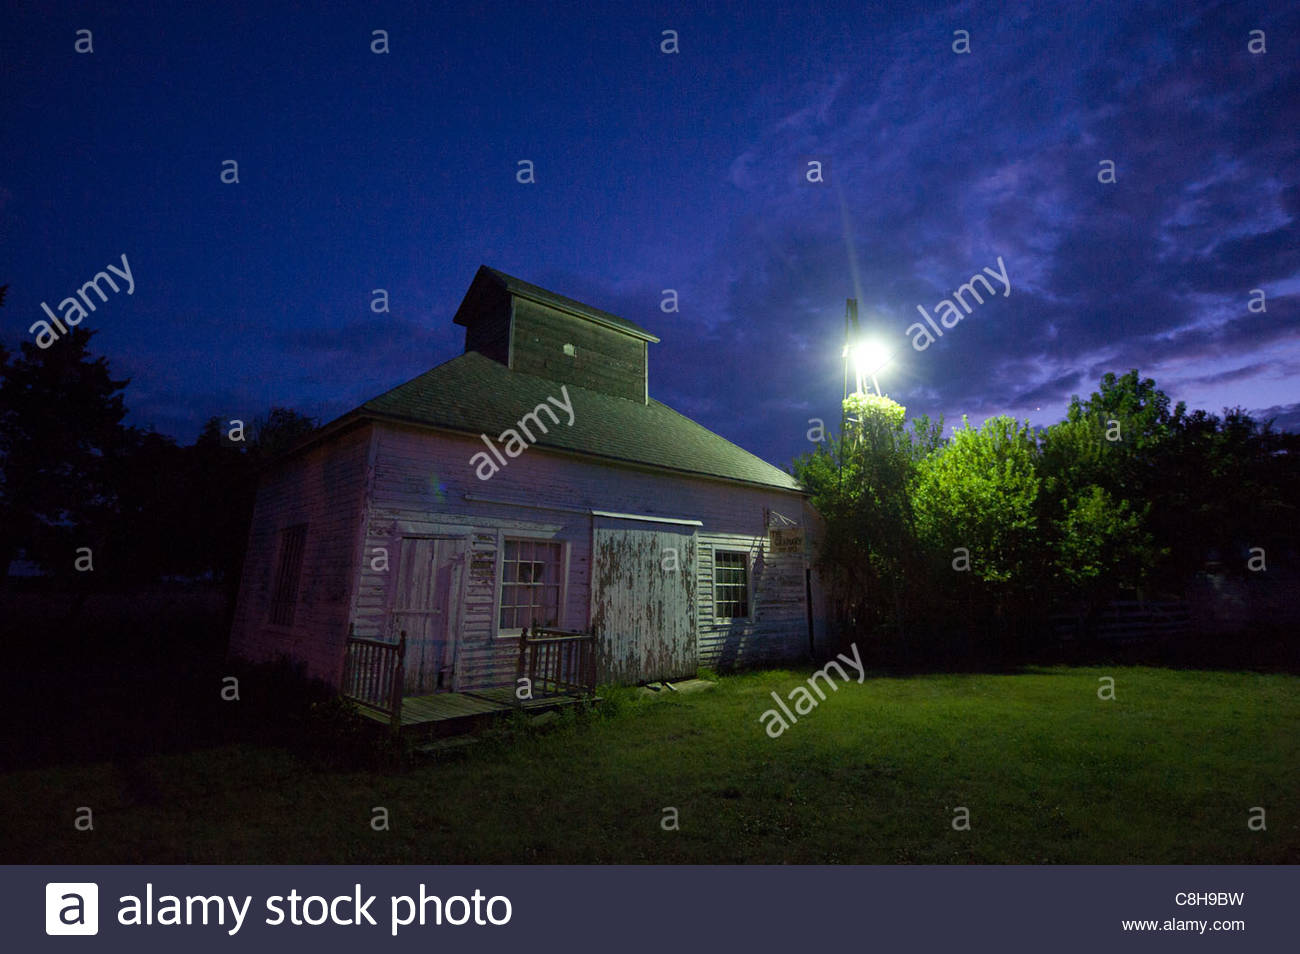 A old building on a farm in Wilson, KS. - Stock Image